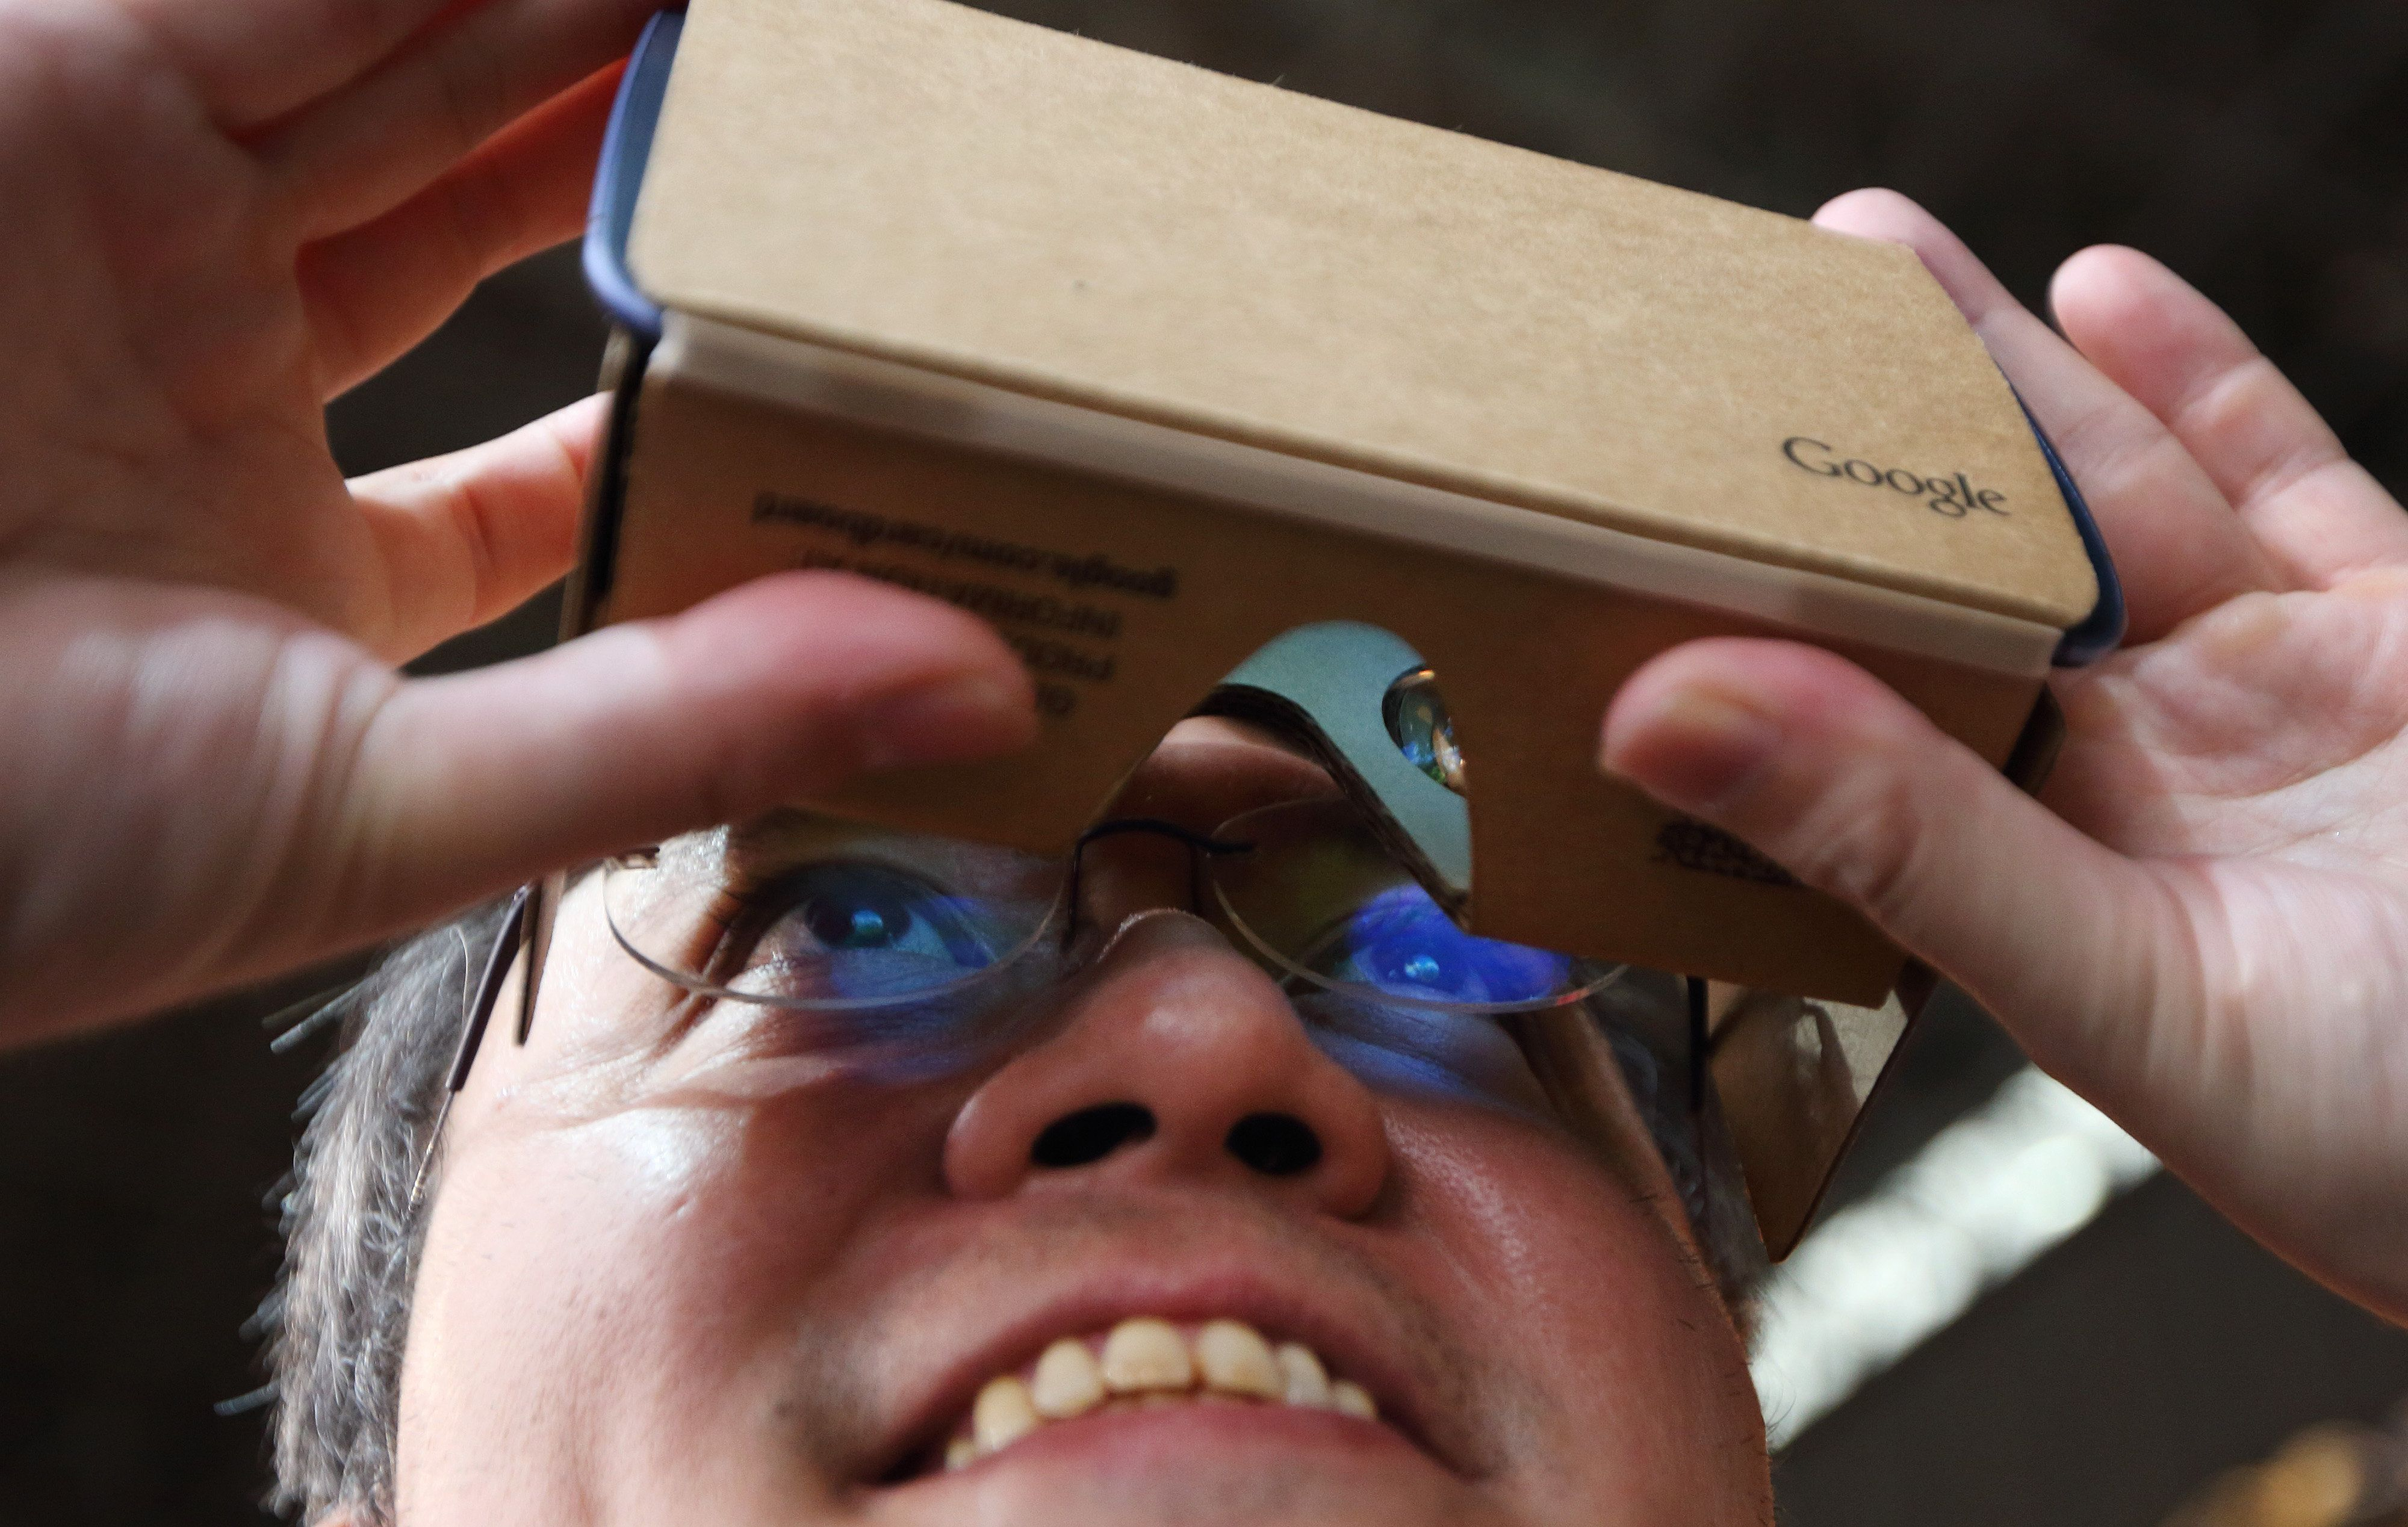 An attendee tries a Google Inc. Cardboard virtual reality headset at the Tokyo Game Show 2015 at Makuhari Messe in Chiba, Japan, on Thursday, Sept. 17, 2015. There will be record attendance at this year's show with 473 vendors, including more than half from abroad, as of Sept. 1, according to organizers. Photographer: Tomohiro Ohsumi/Bloomberg via Getty Images